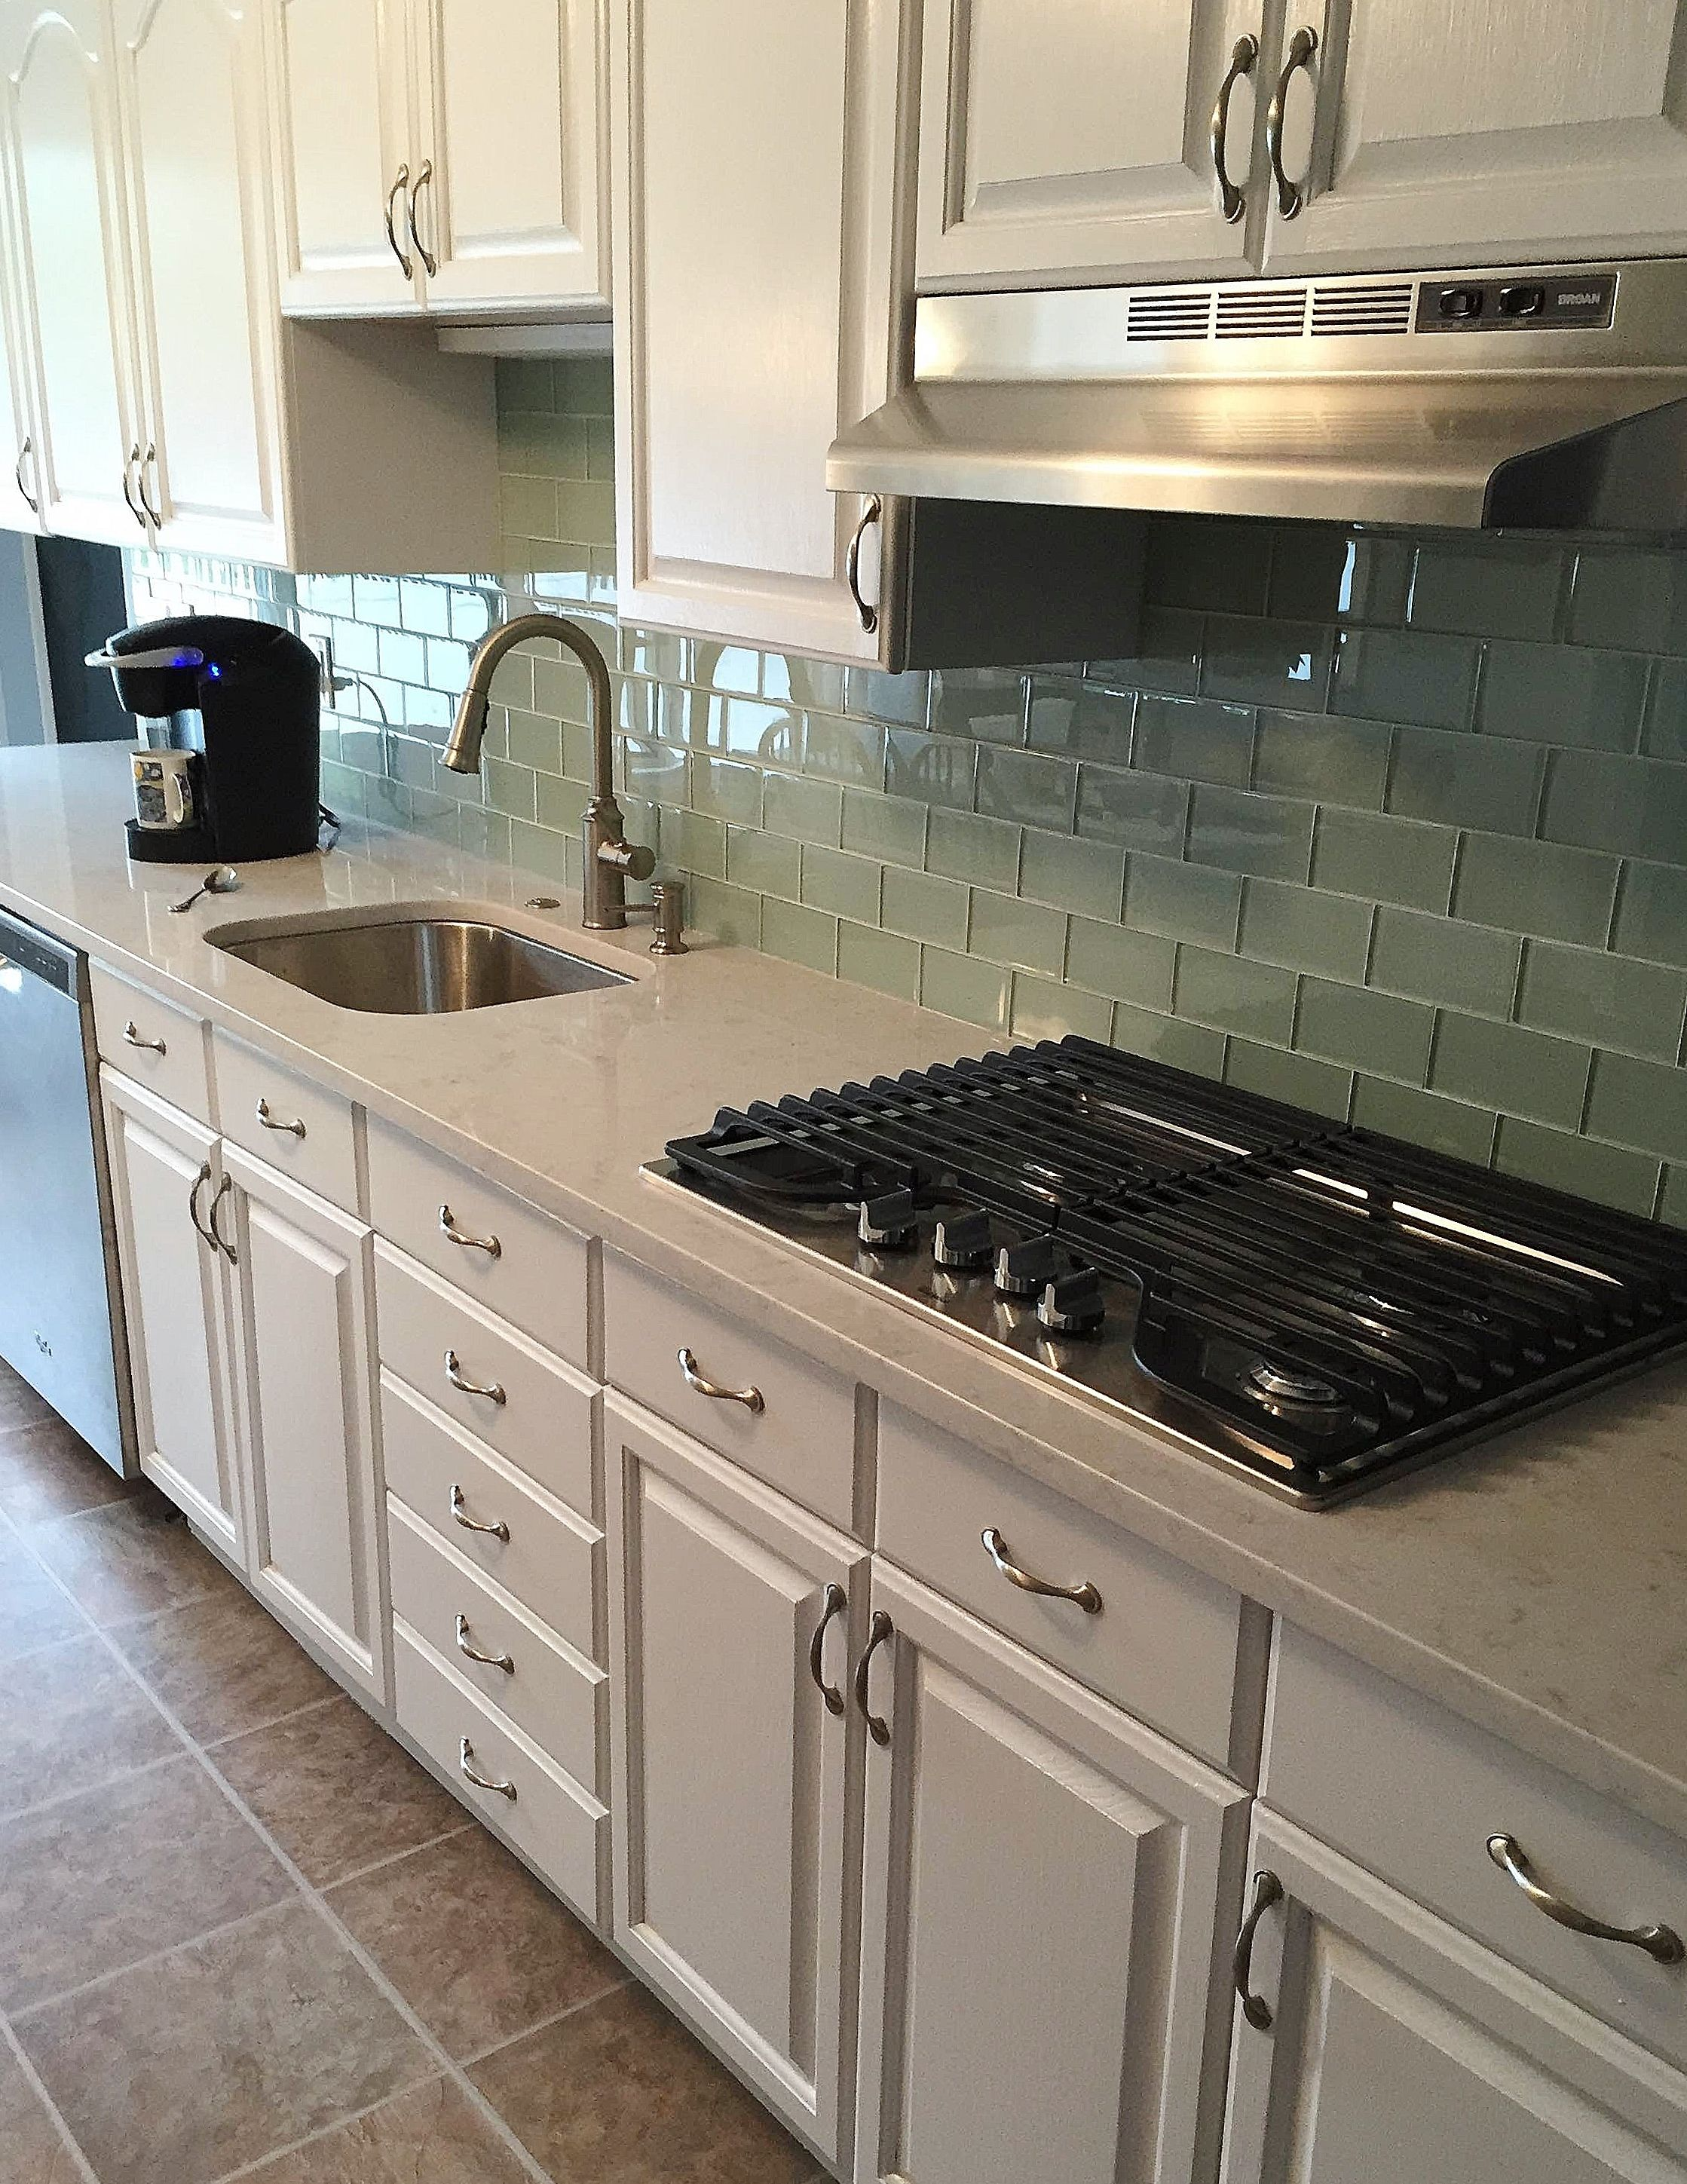 Granite Kitchen Tiles Silestone Lagoon Quartz Countertops With A Soft Blue Glass Tile